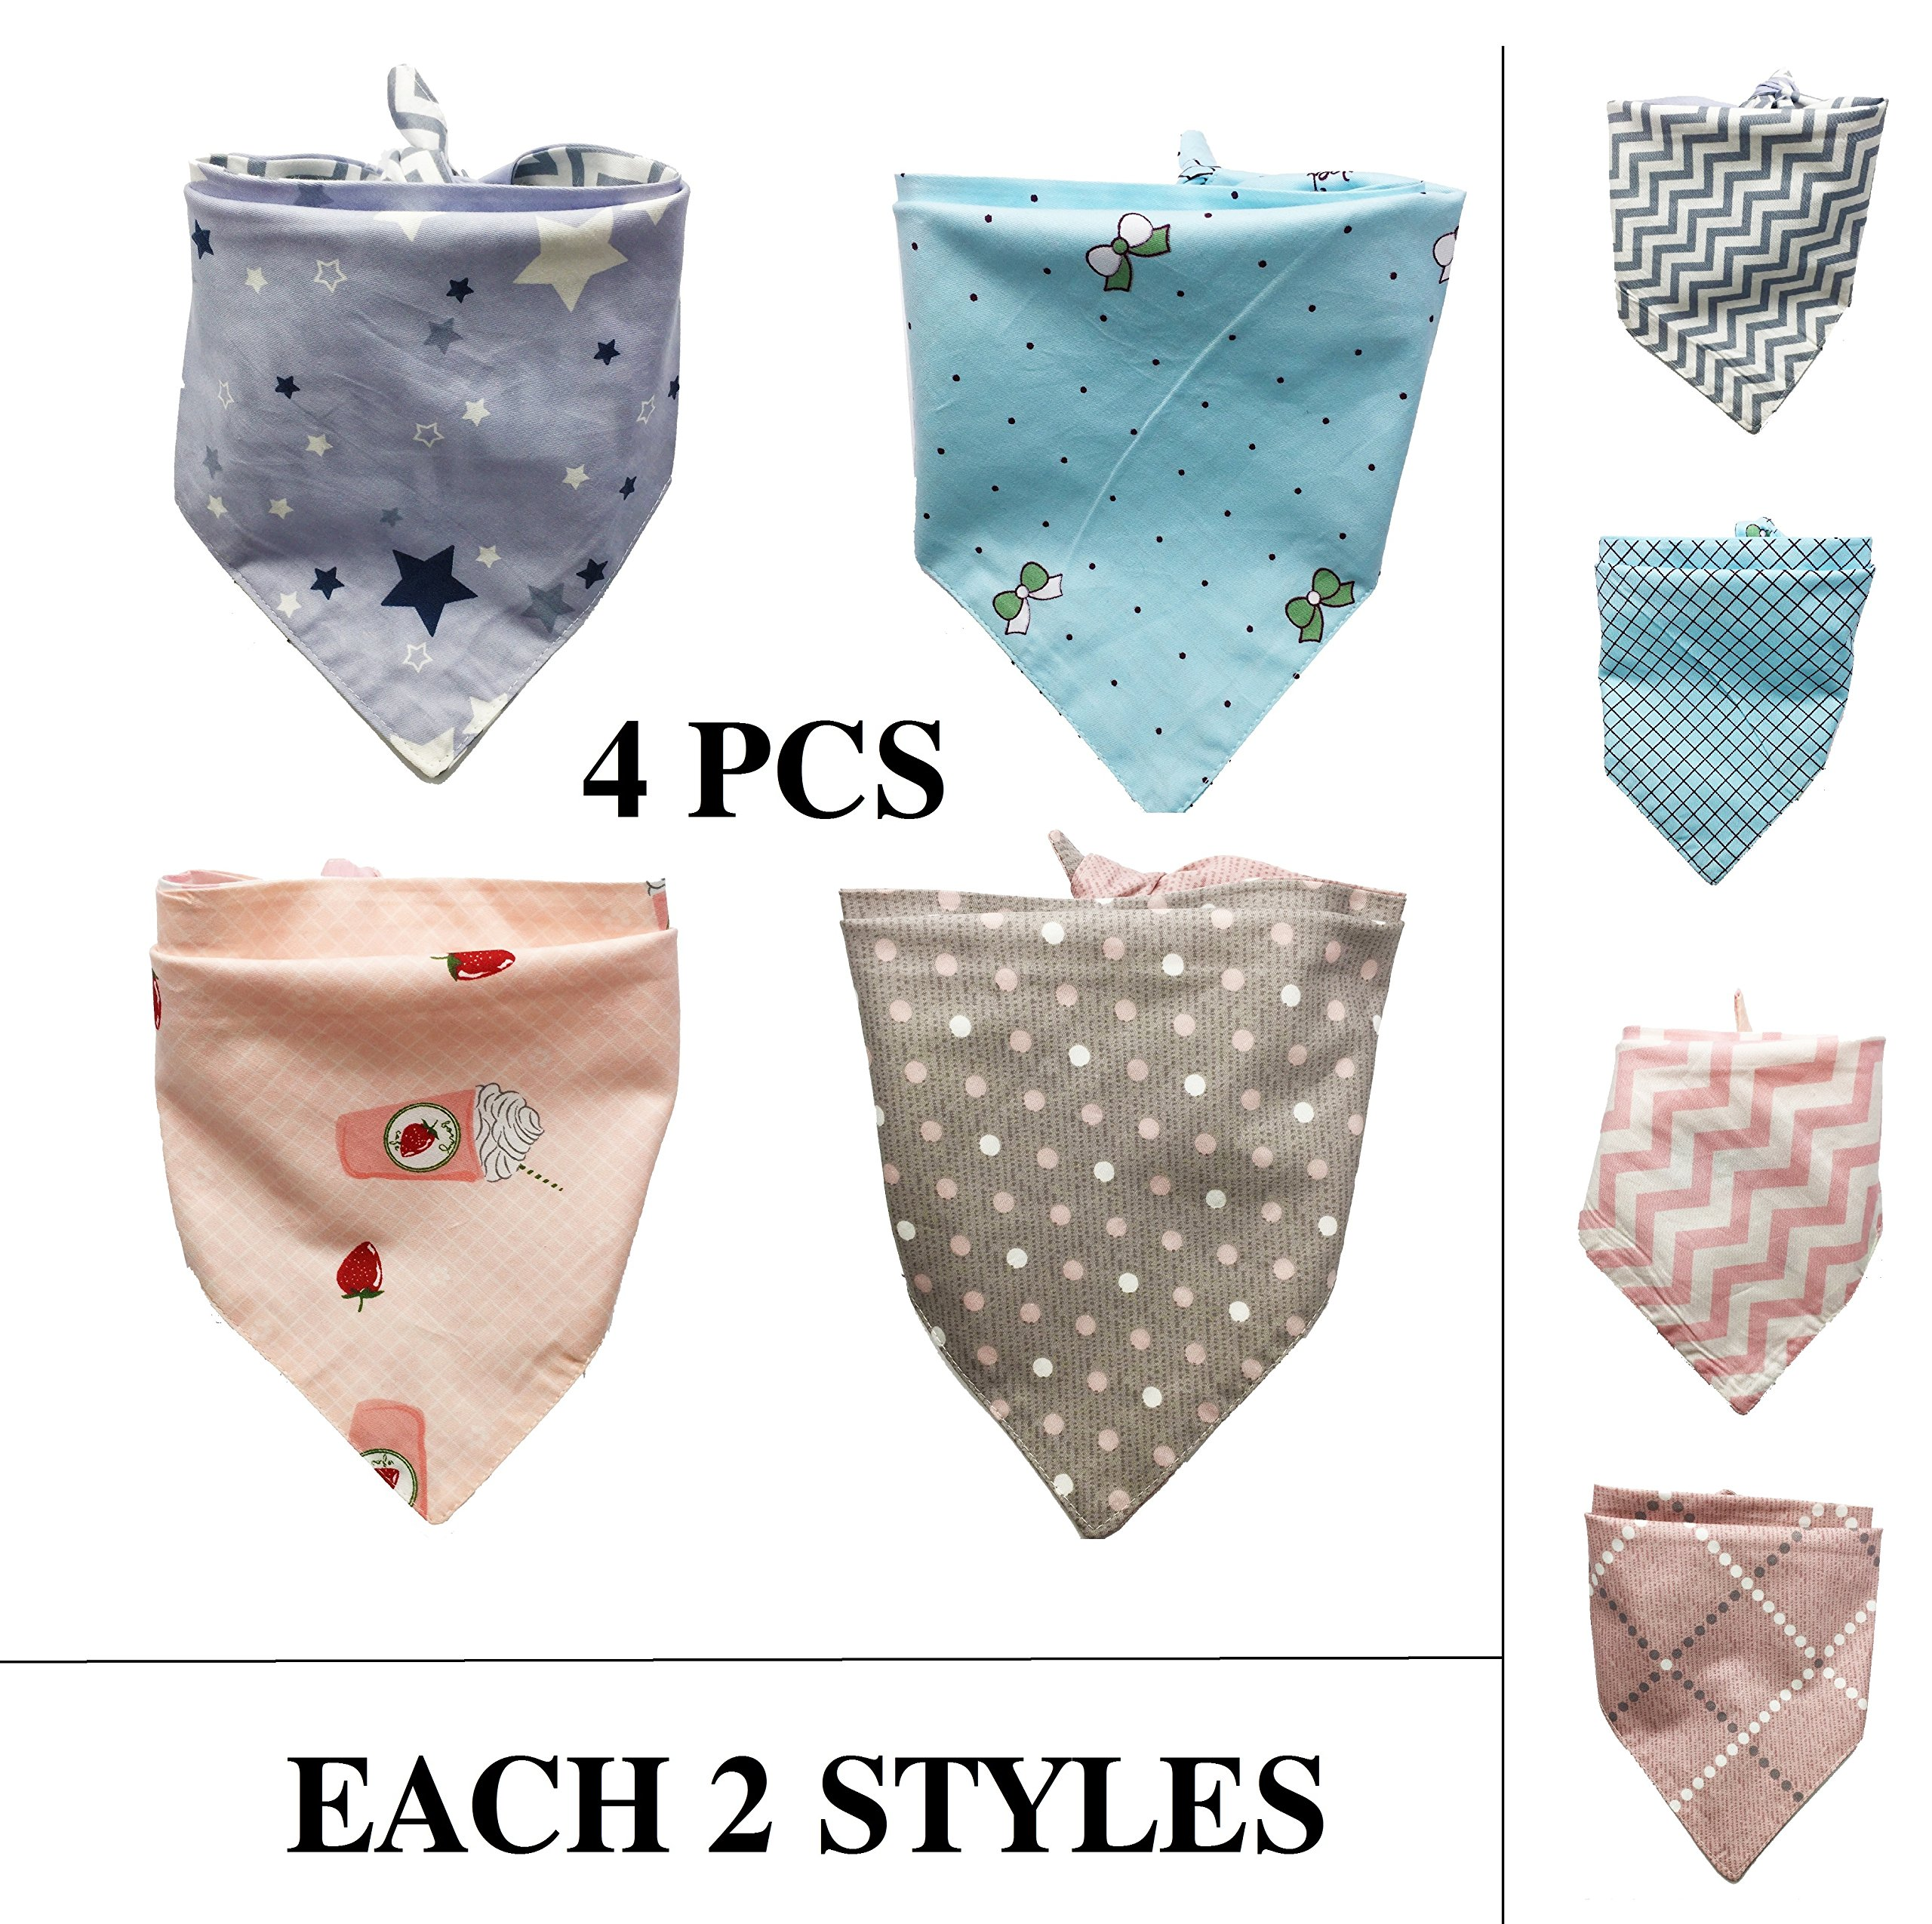 FUNPET 4 Pcs Dog Bandana Triangle Bibs Scarfs Accessories for Pet Cats and Puppies